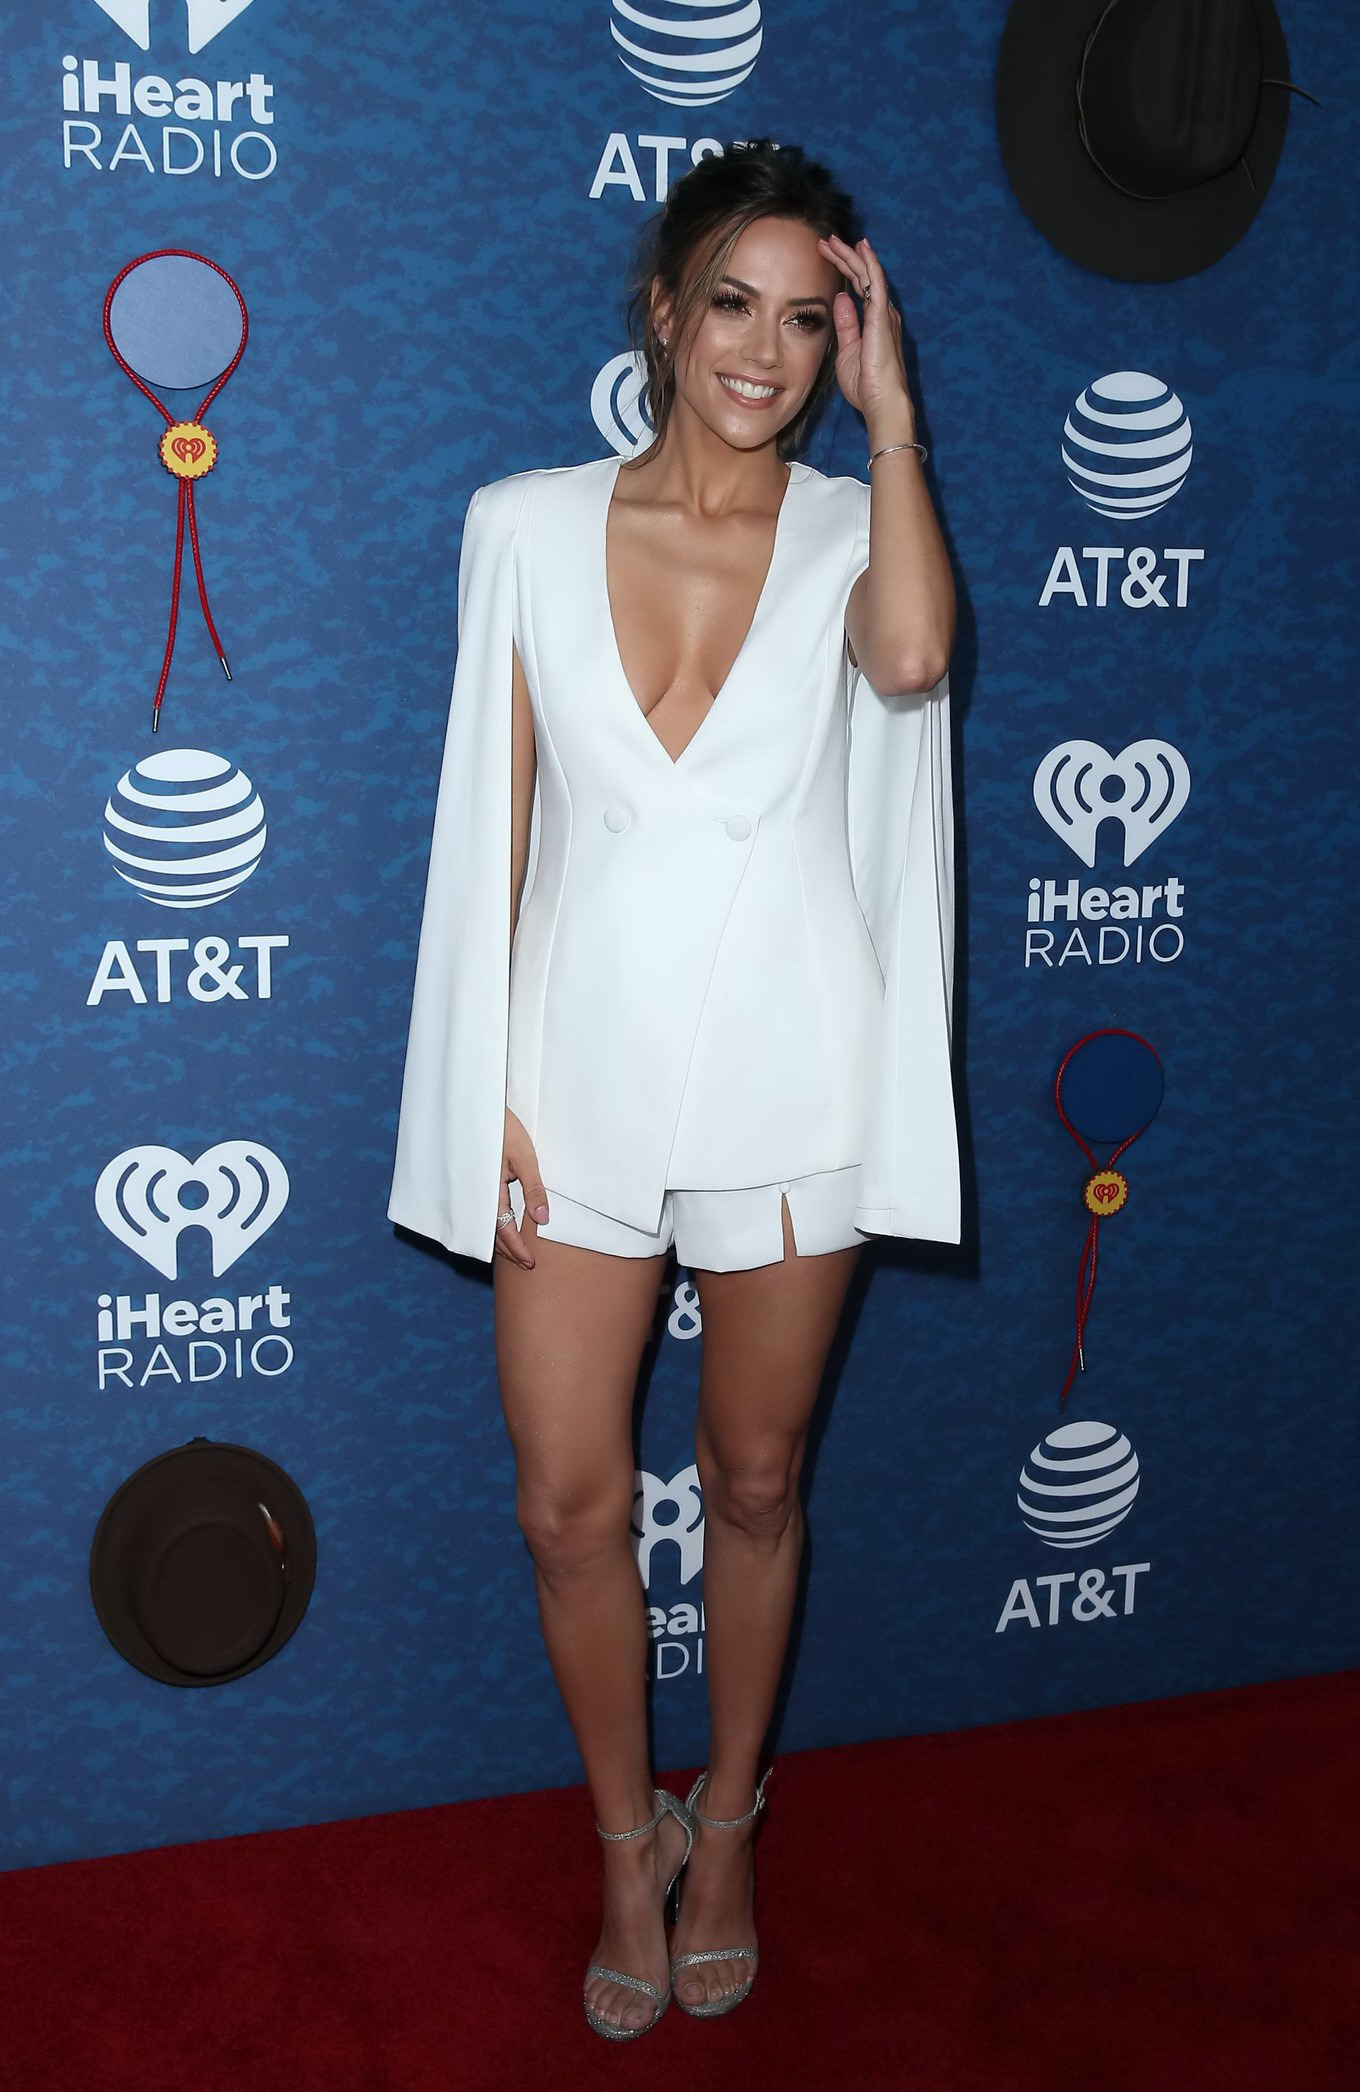 Think, Jana kramer dress